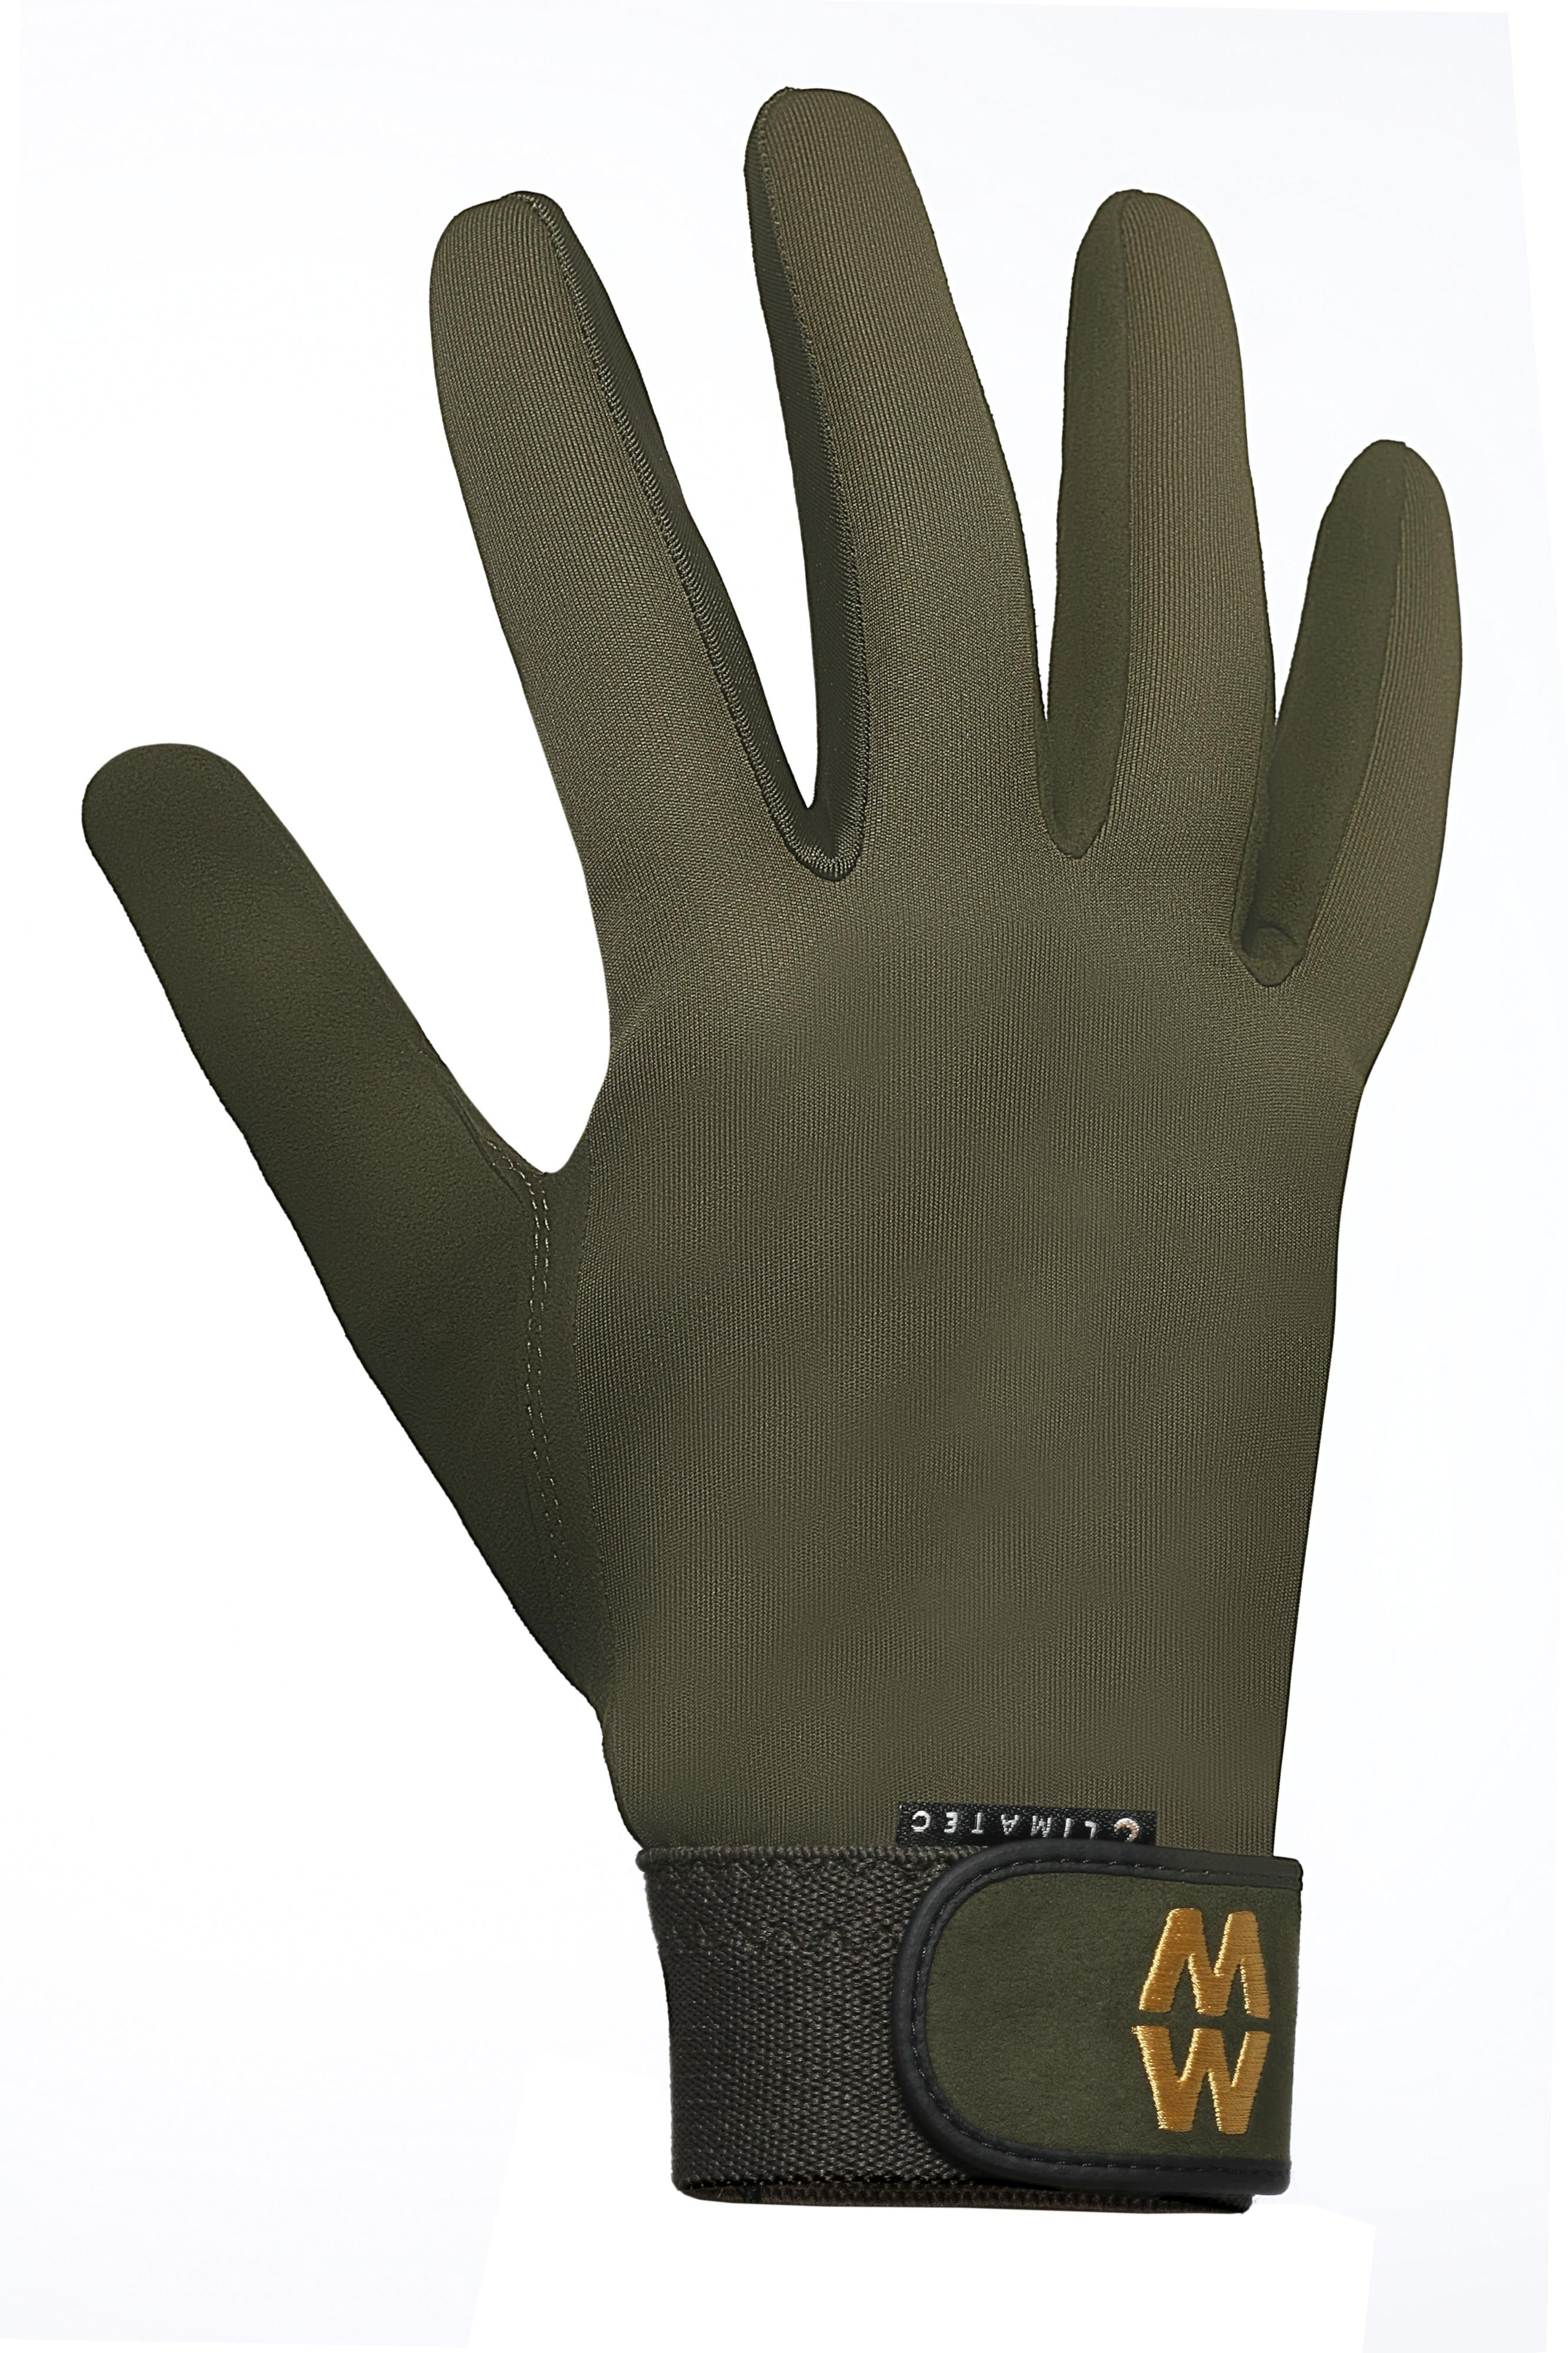 Macwet Climatec Long Cuff Gloves in Green